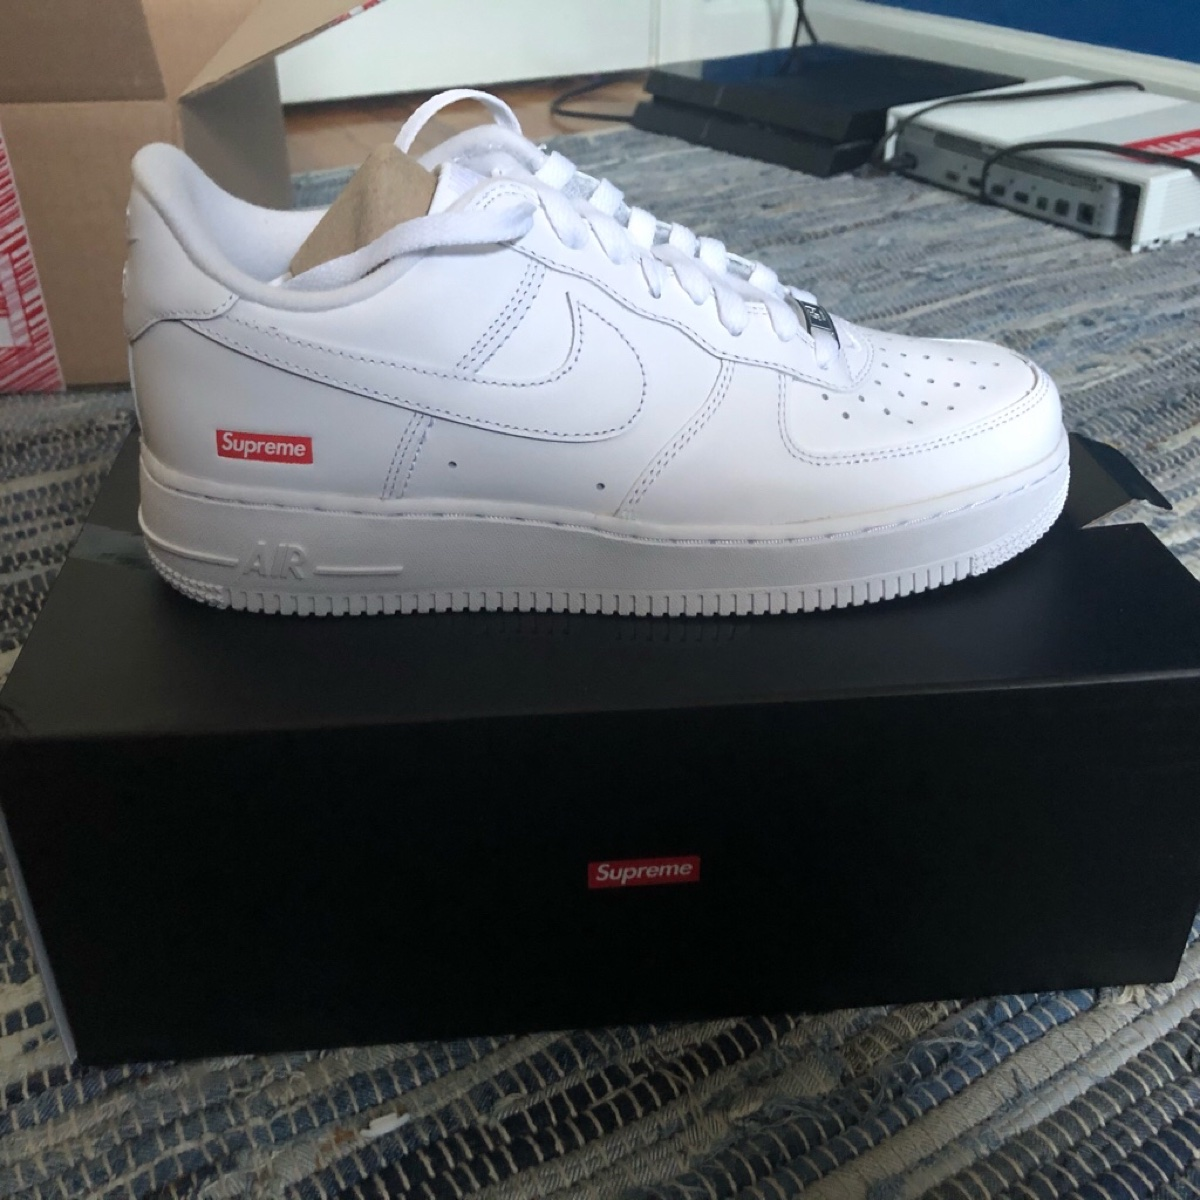 Supreme Air Force 1 Low